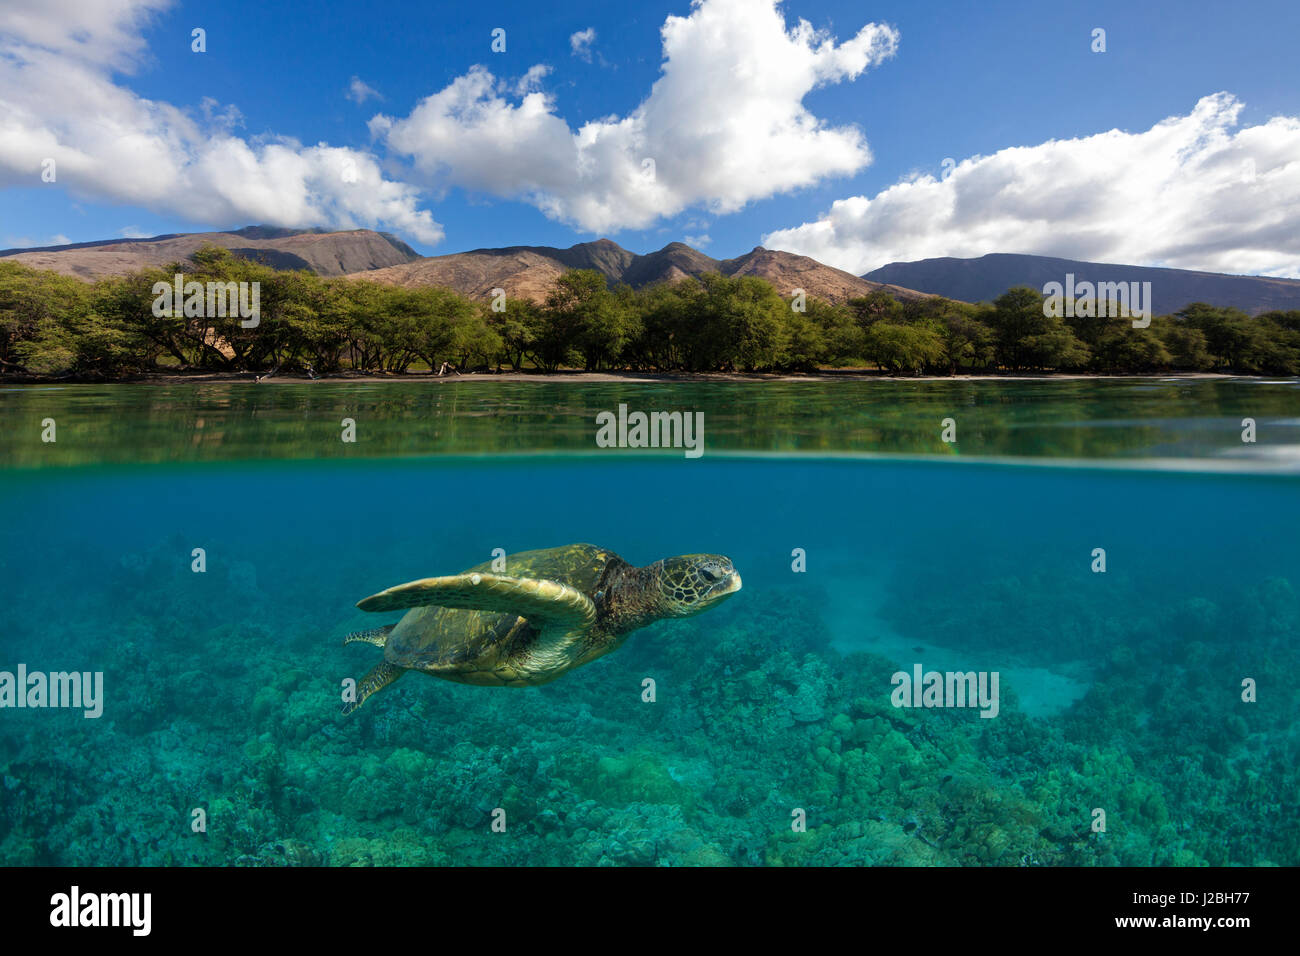 Green sea turtle swims over coral at Olowalu, Maui with the West Maui Mountains in the distance. - Stock Image